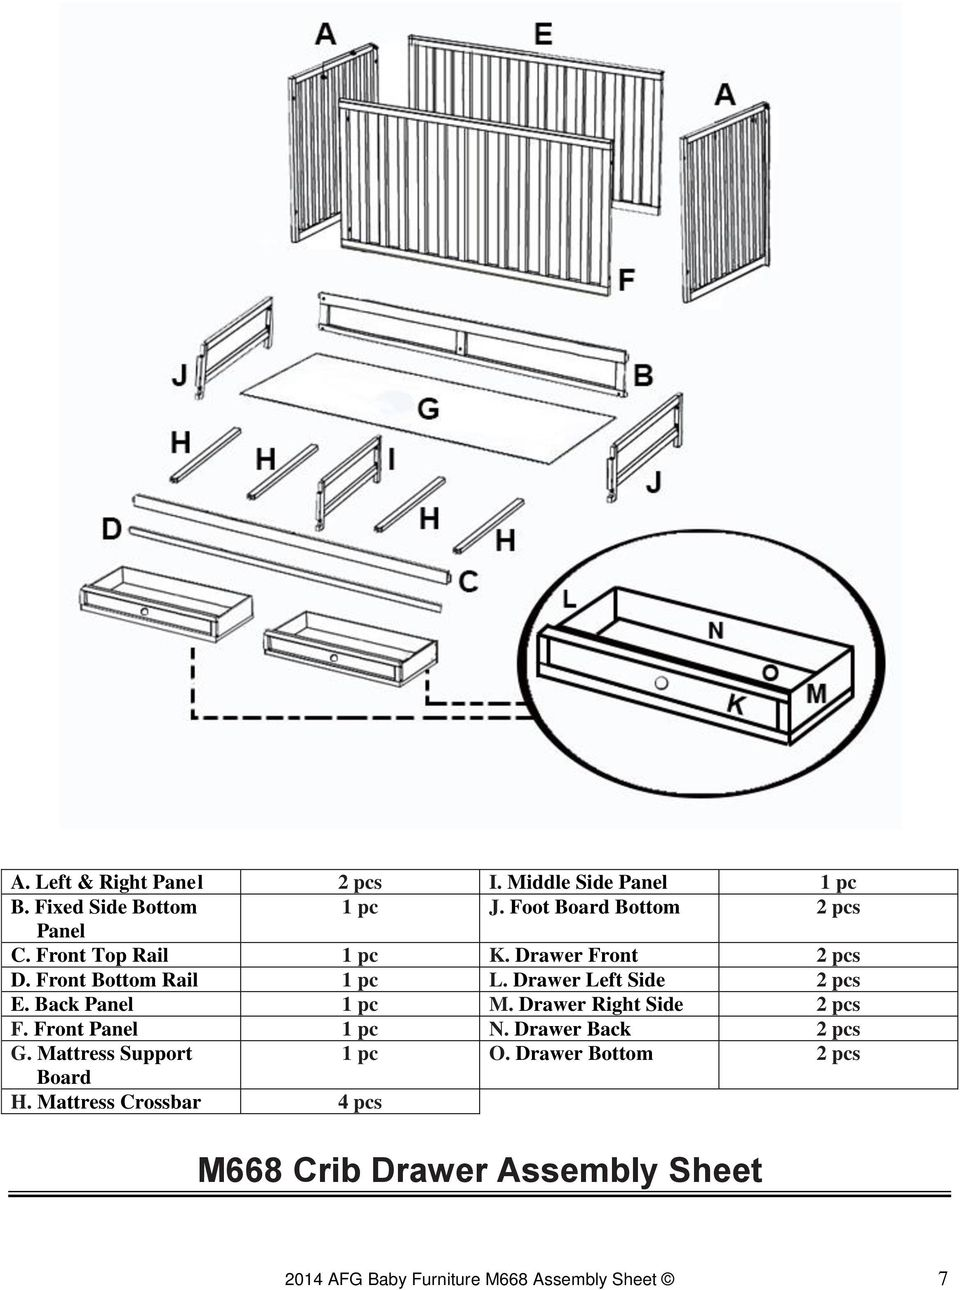 Drawer Left Side 2 pcs E. Back Panel 1 pc M. Drawer Right Side 2 pcs F. Front Panel 1 pc N. Drawer Back 2 pcs G.